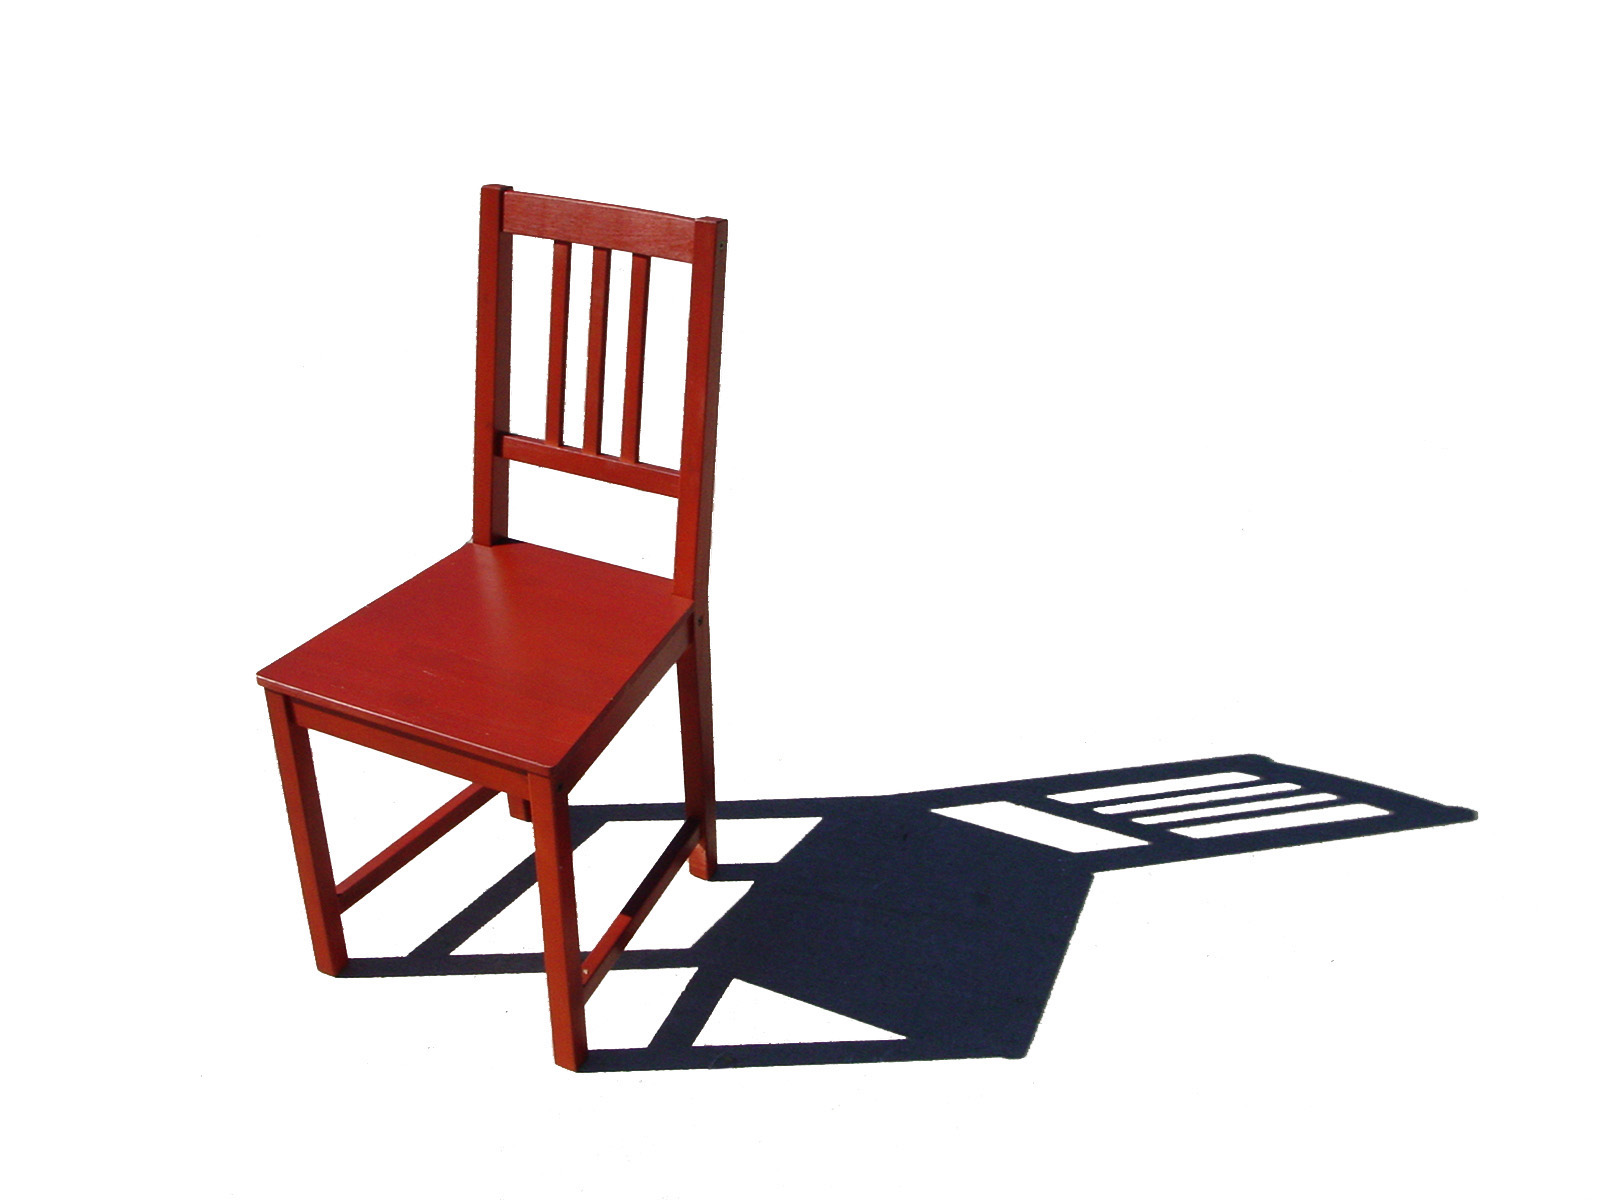 10-23 Chair Exp.jpg